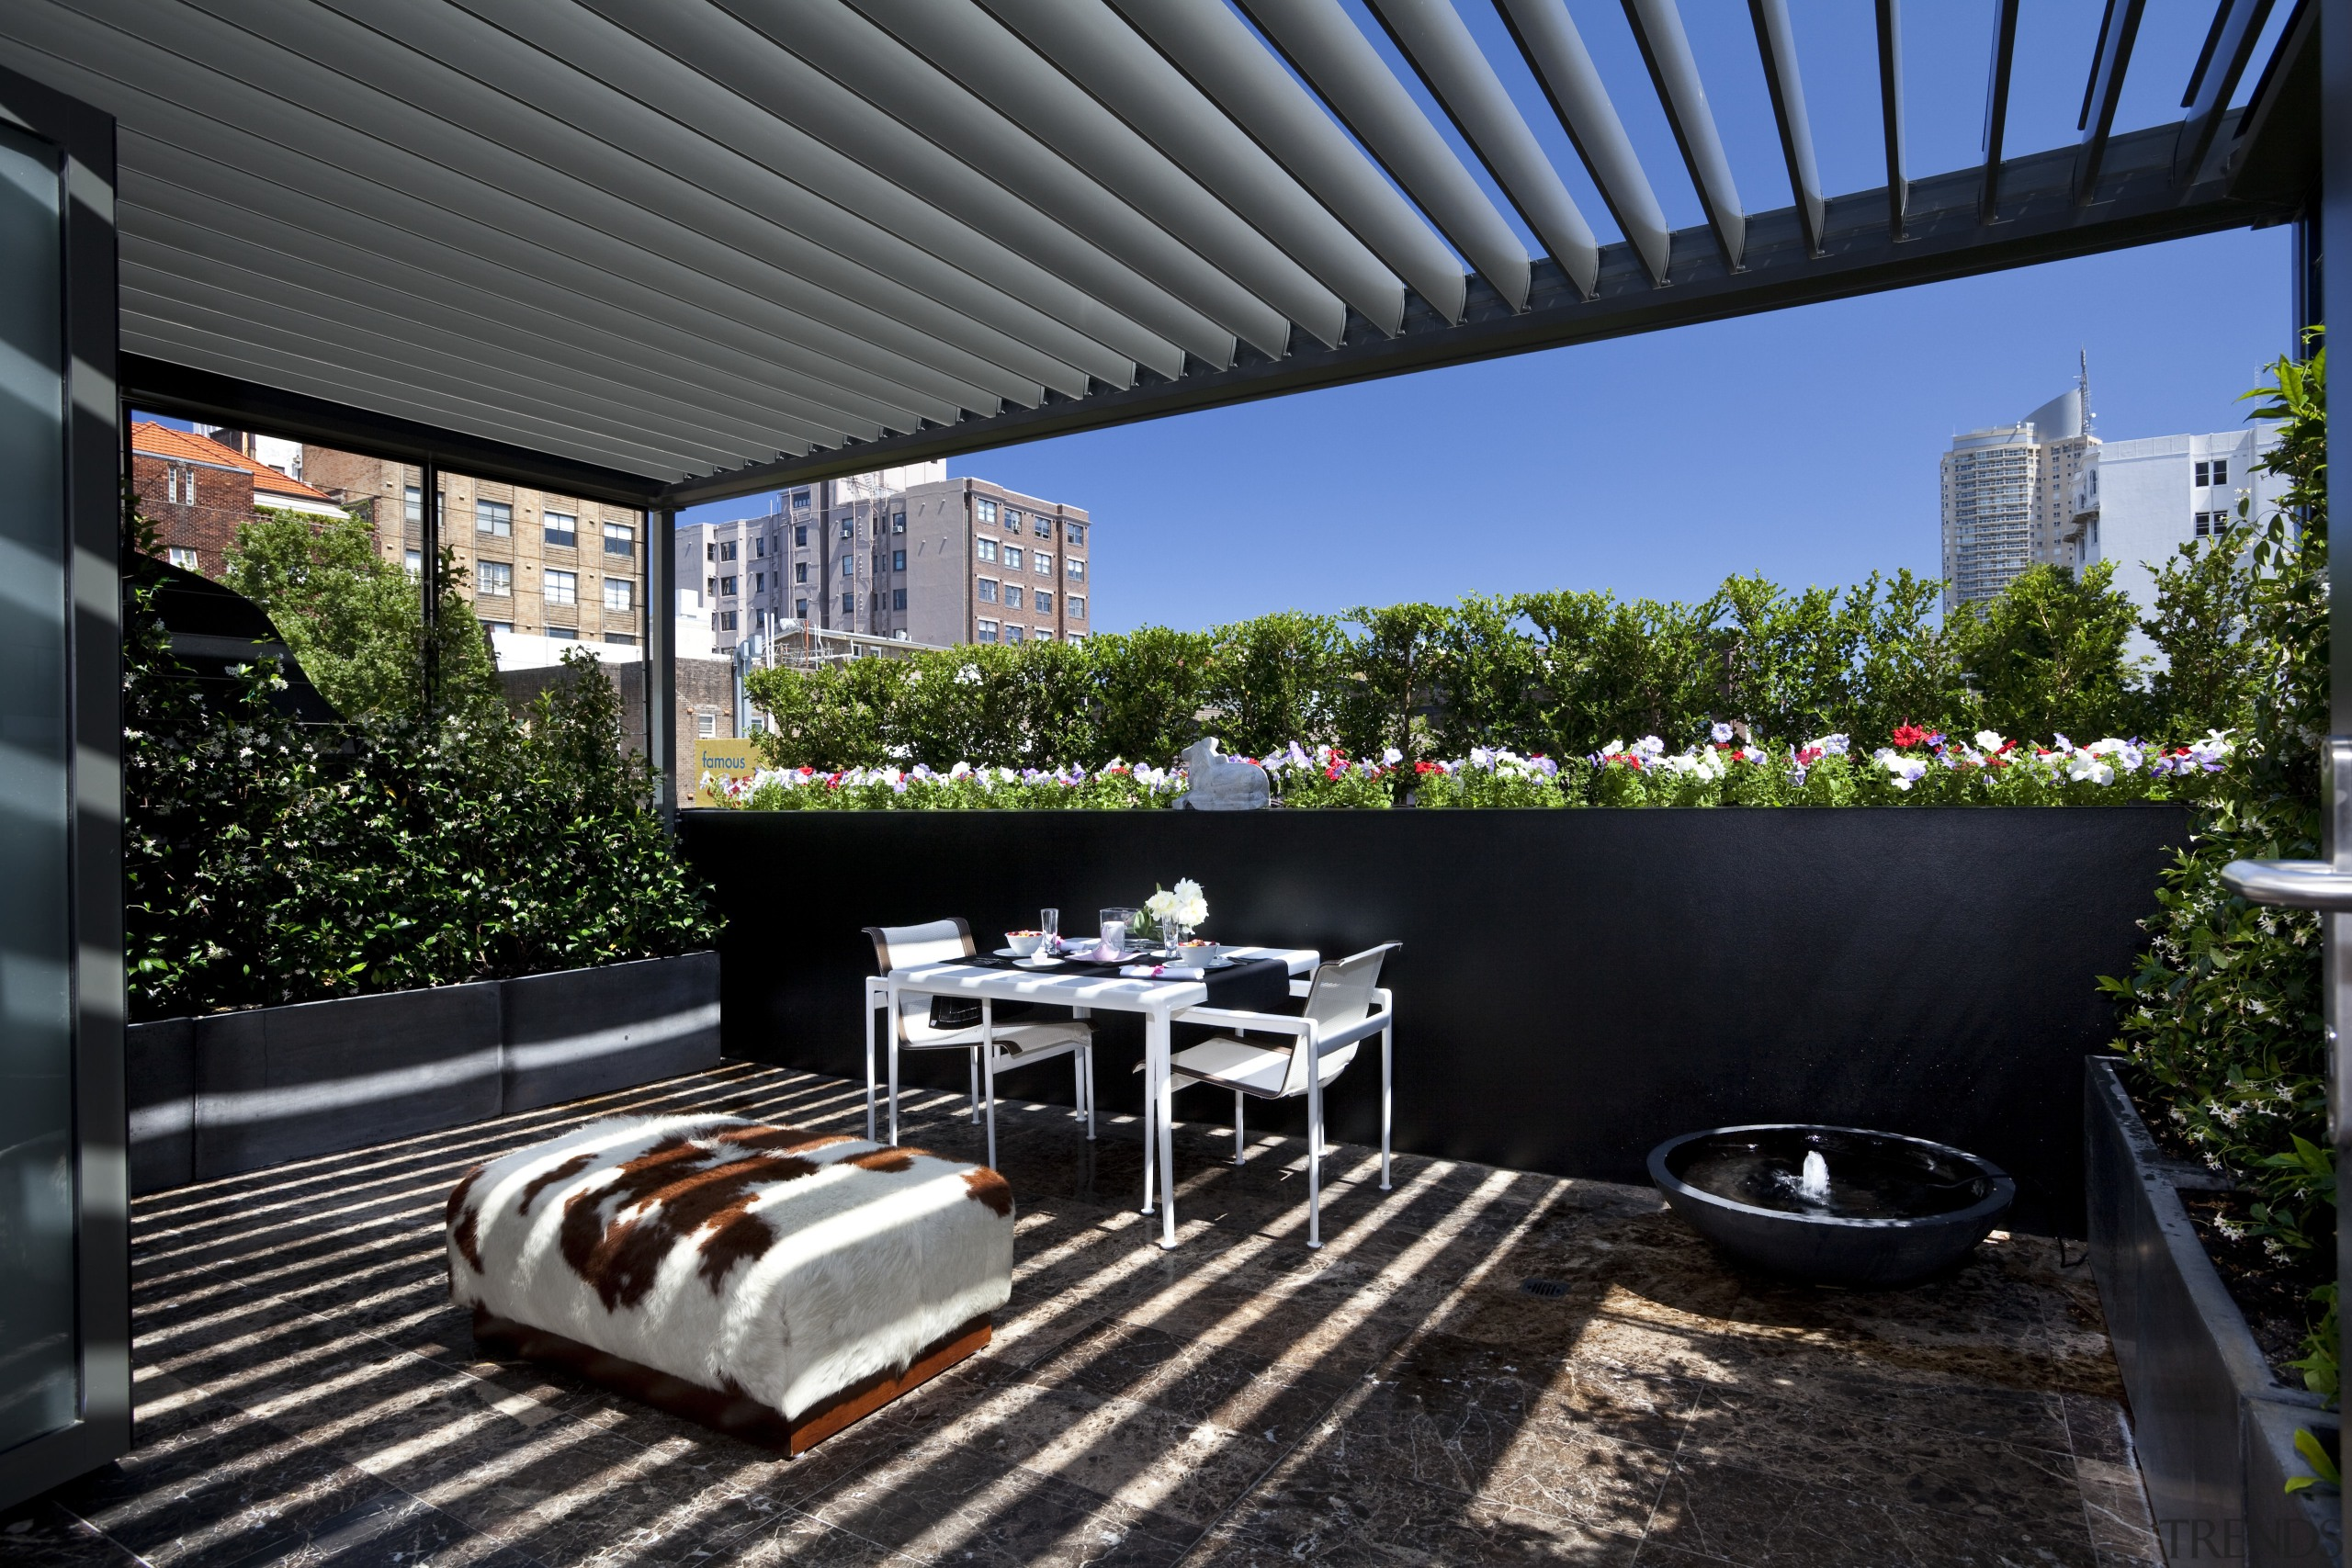 View of outdoor area. - View of outdoor apartment, backyard, home, house, outdoor structure, patio, real estate, roof, black